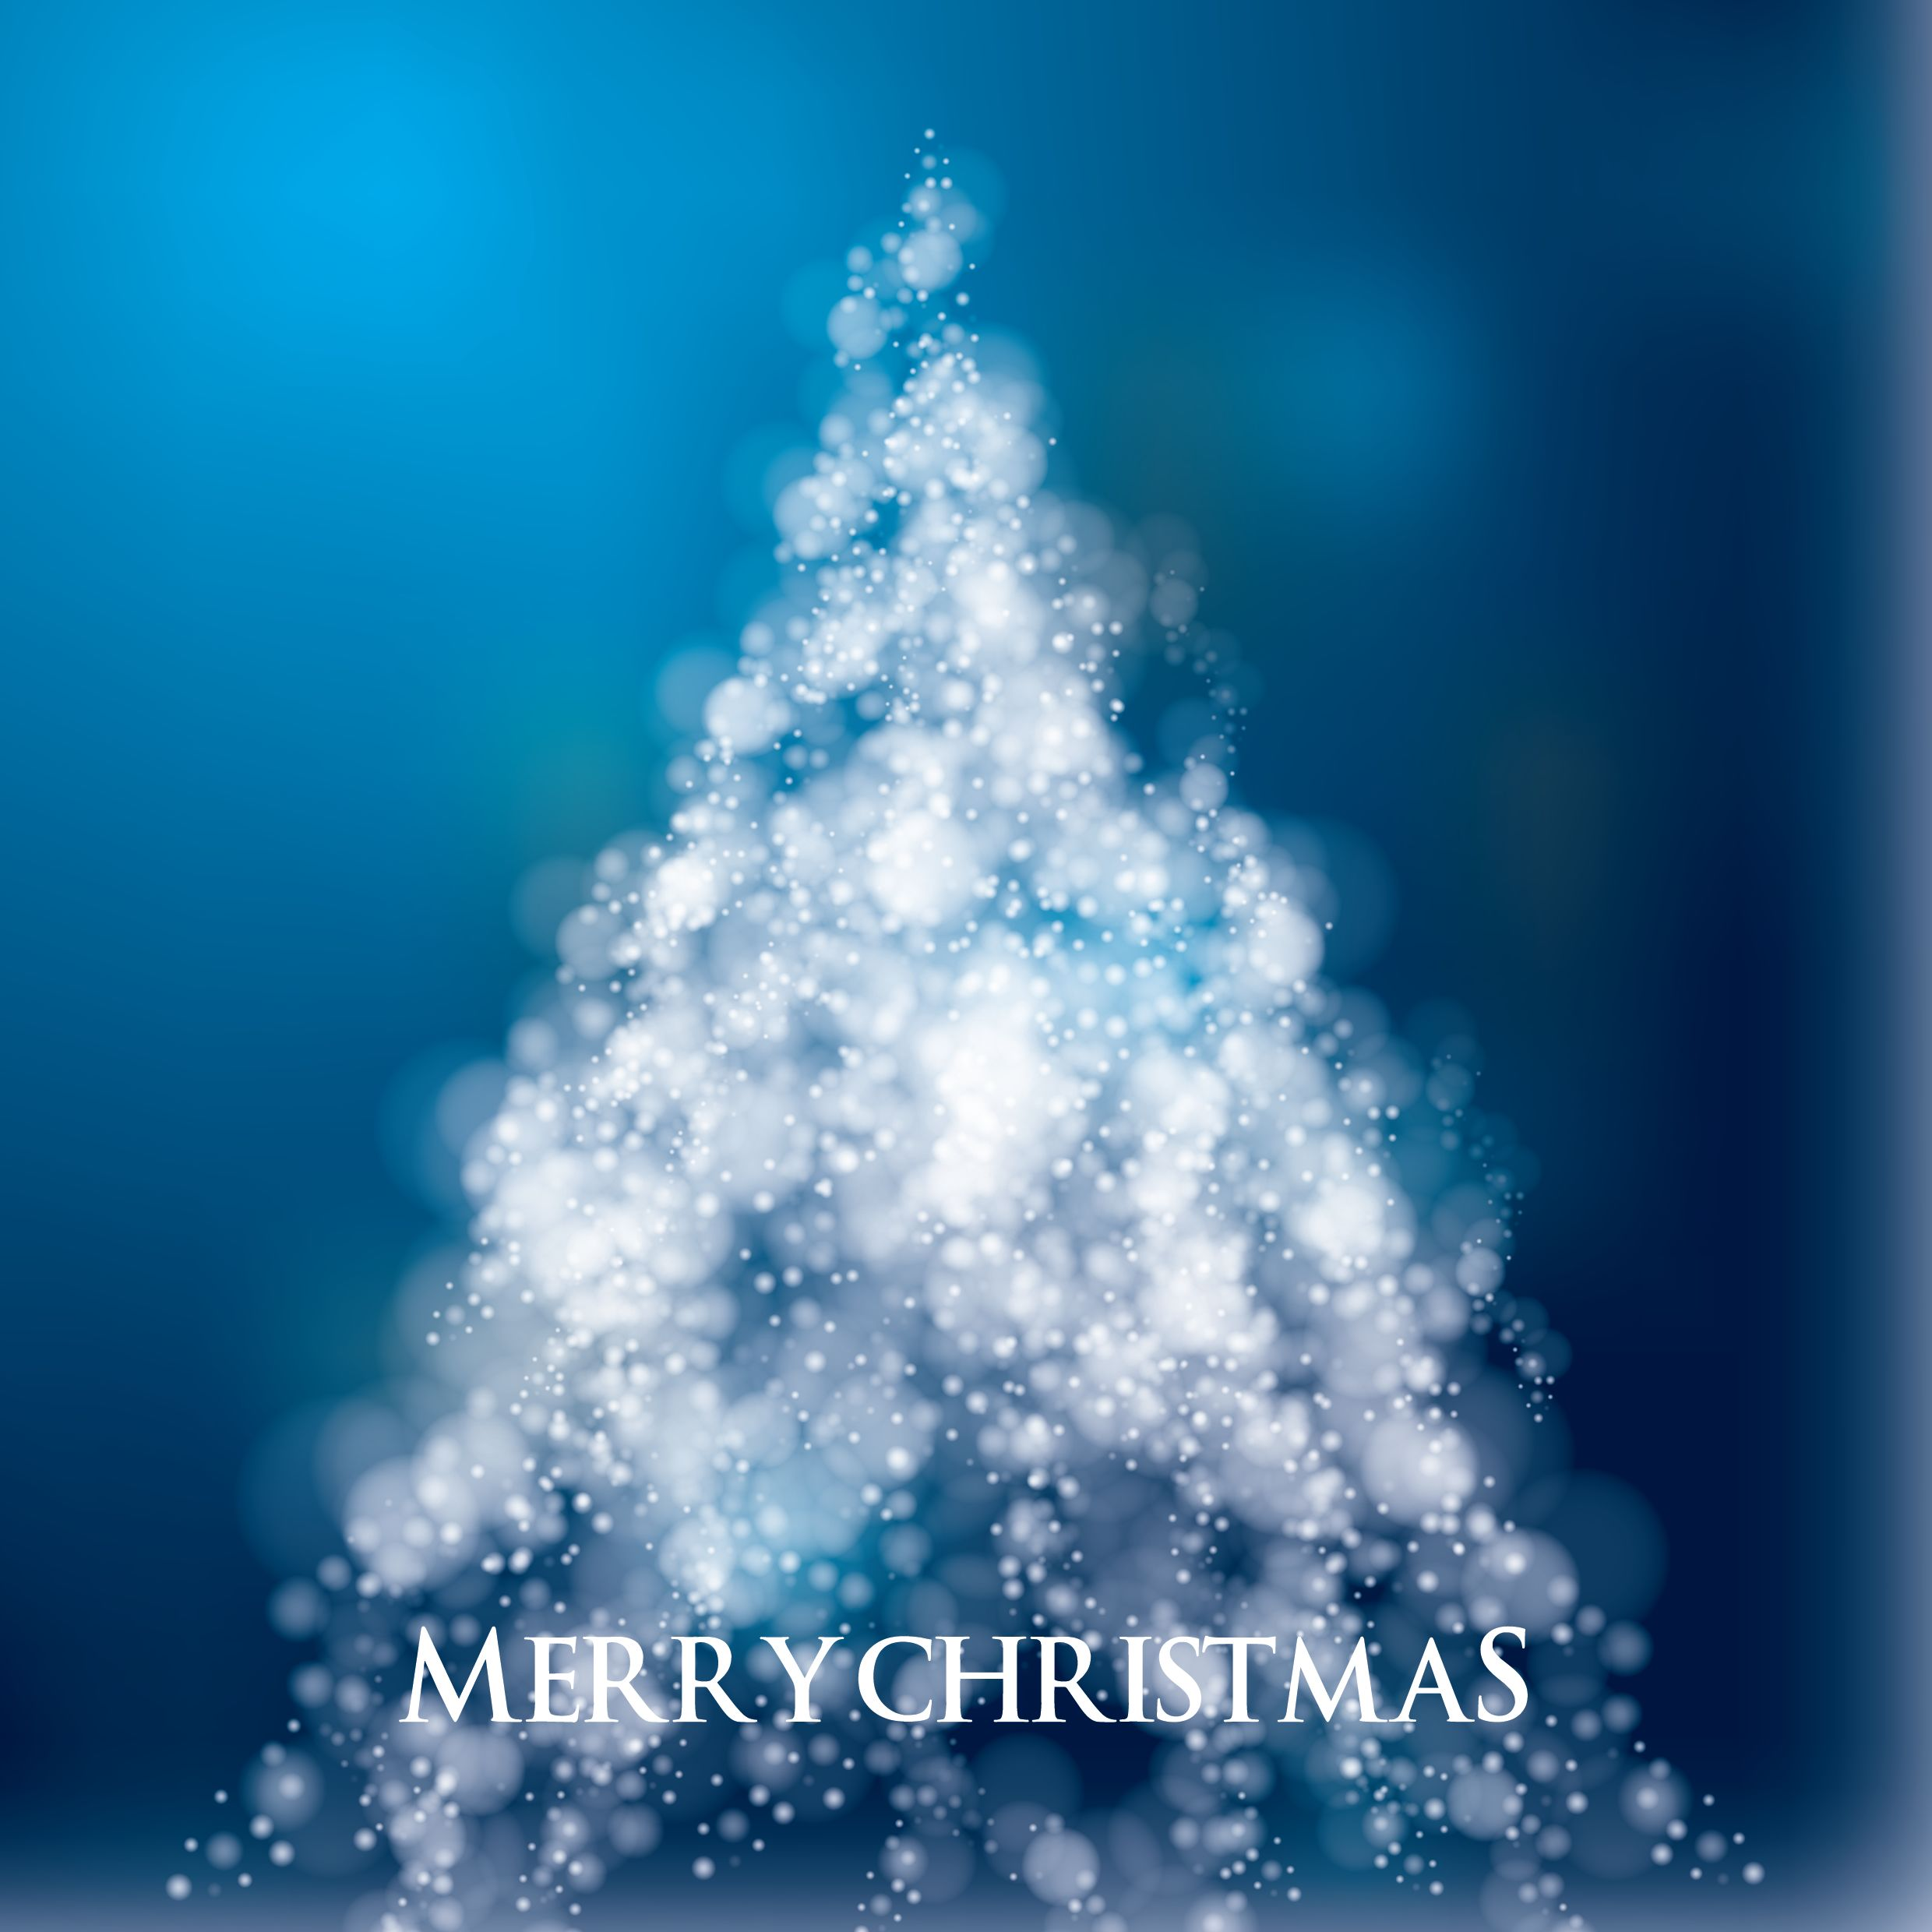 Wishing you merry Christmas and happy new year